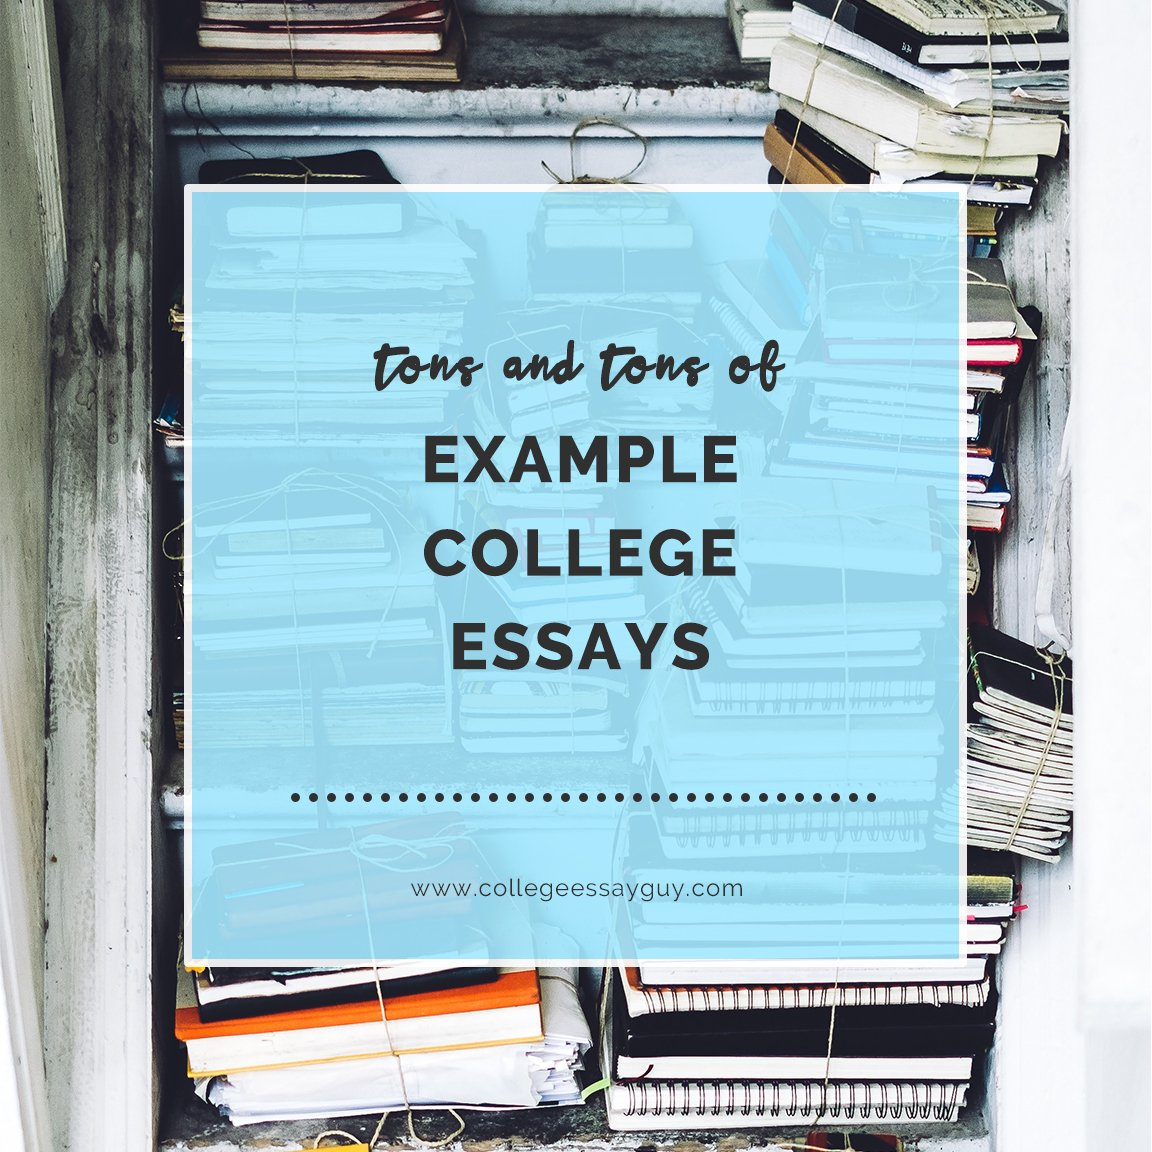 One of the best ways to learn to write your college application or admissions personal essay about yourself is by learning from real college essay samples that worked.  Here are 12 examples of essays that worked: goo.gl/vWLdCe